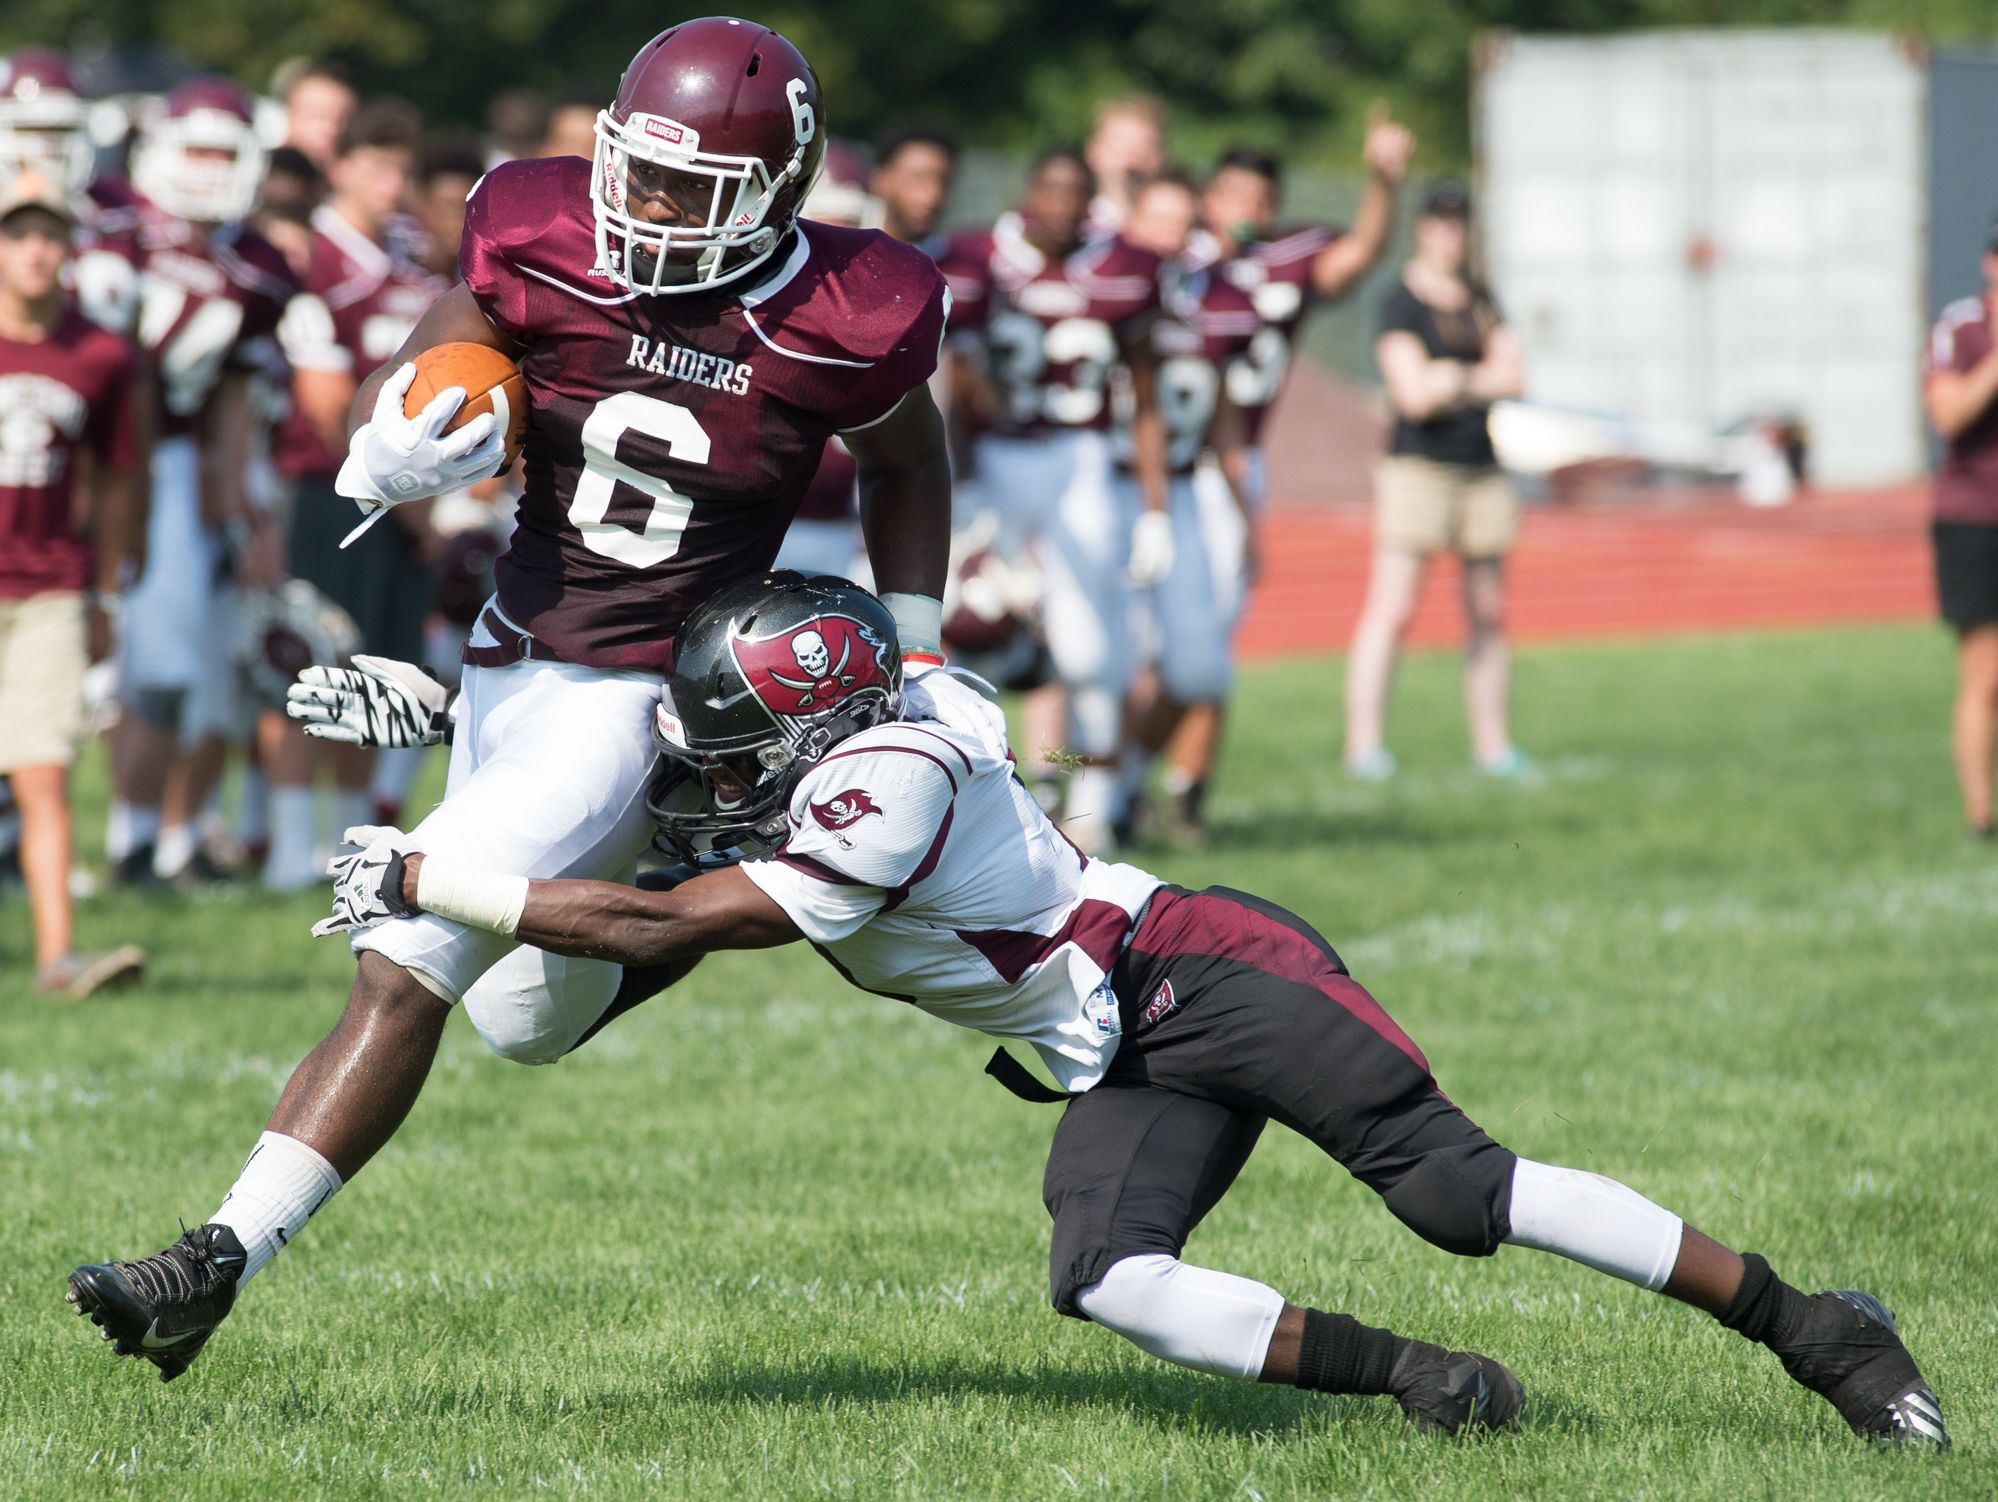 Concord's Grahm Roberts (6), shown here against Caravel's Mandela Montgomery, has rushed for more than 500 yards in the Raiders' first three games.